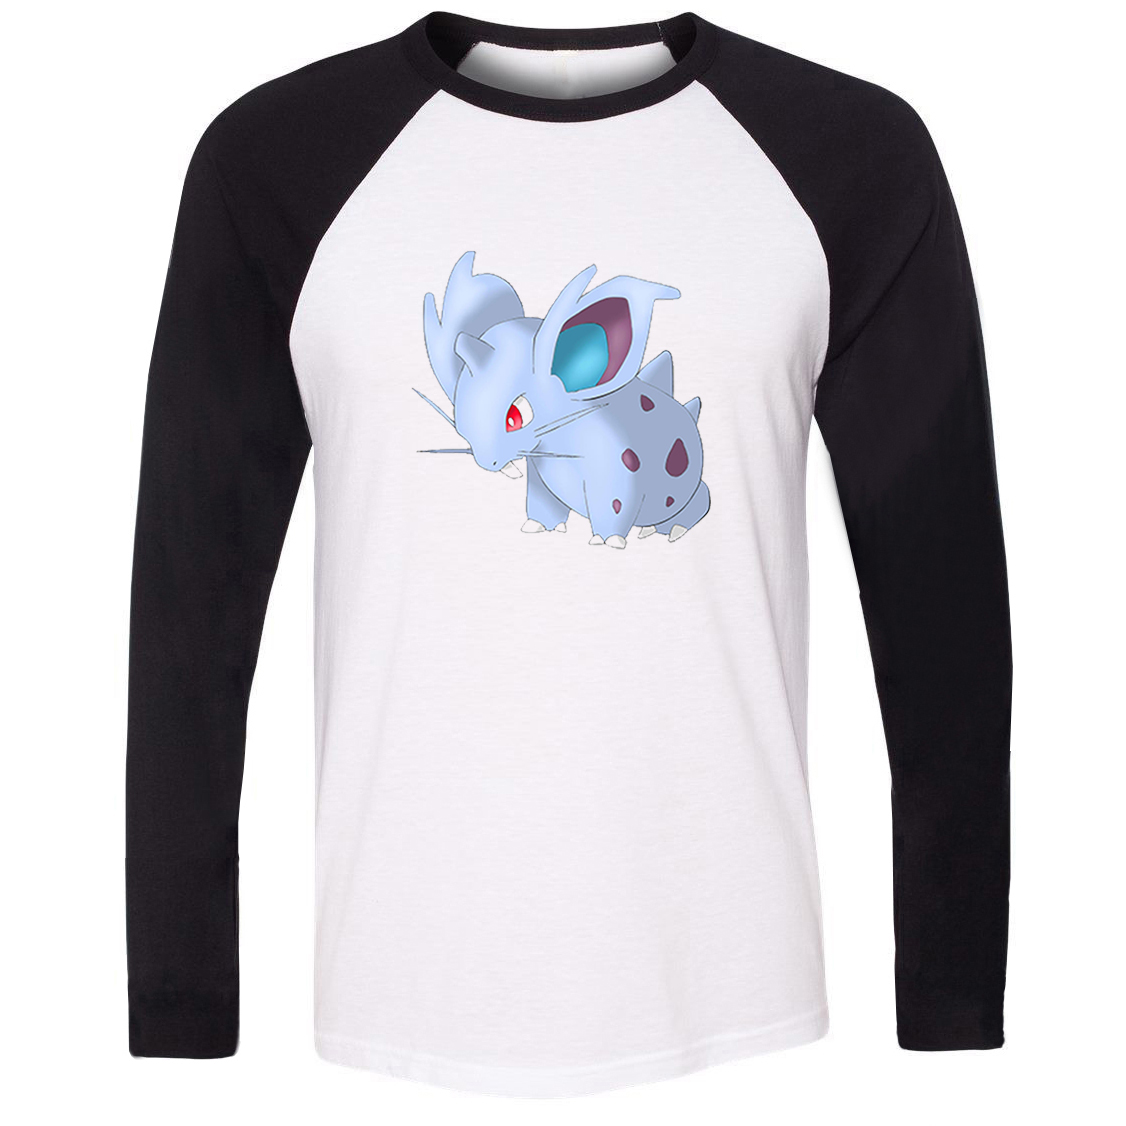 iDzn Unisex T-shirt Pokemon National Pokedex 029 Poison Type Nidoran Pattern Raglan Long Sleeve Men T shirt Boy Casual Tee Tops image